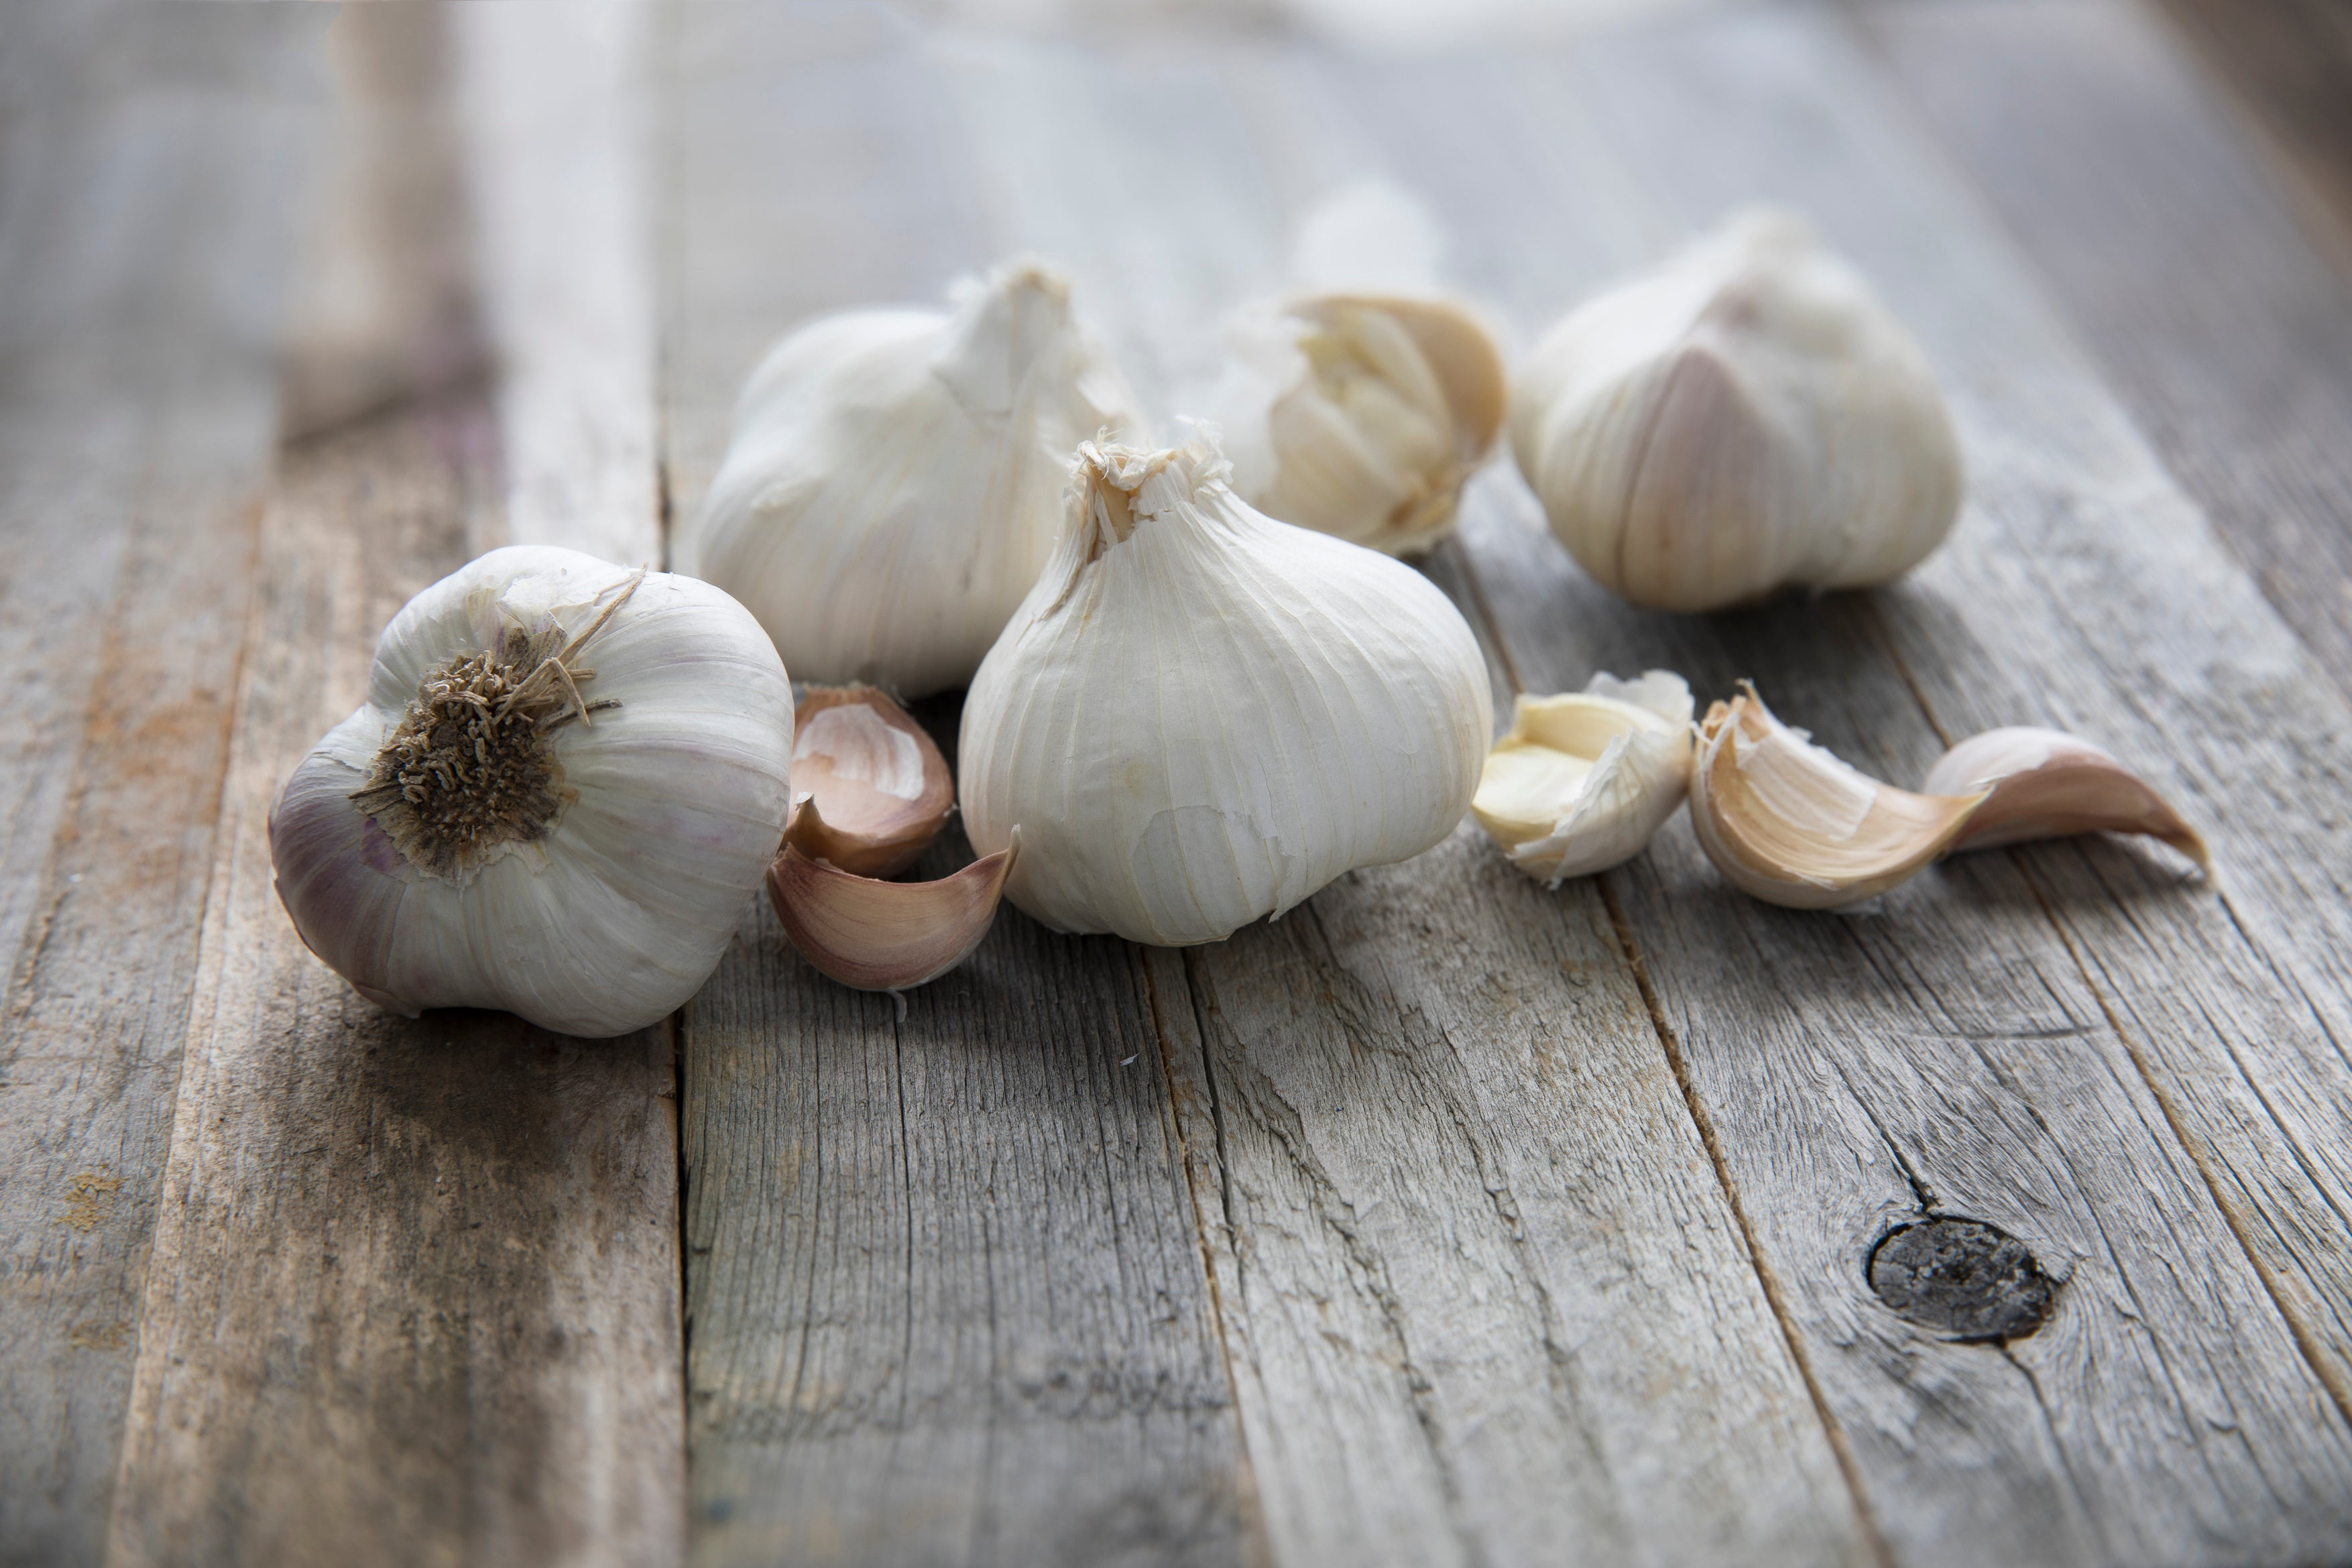 Different Types of Garlic